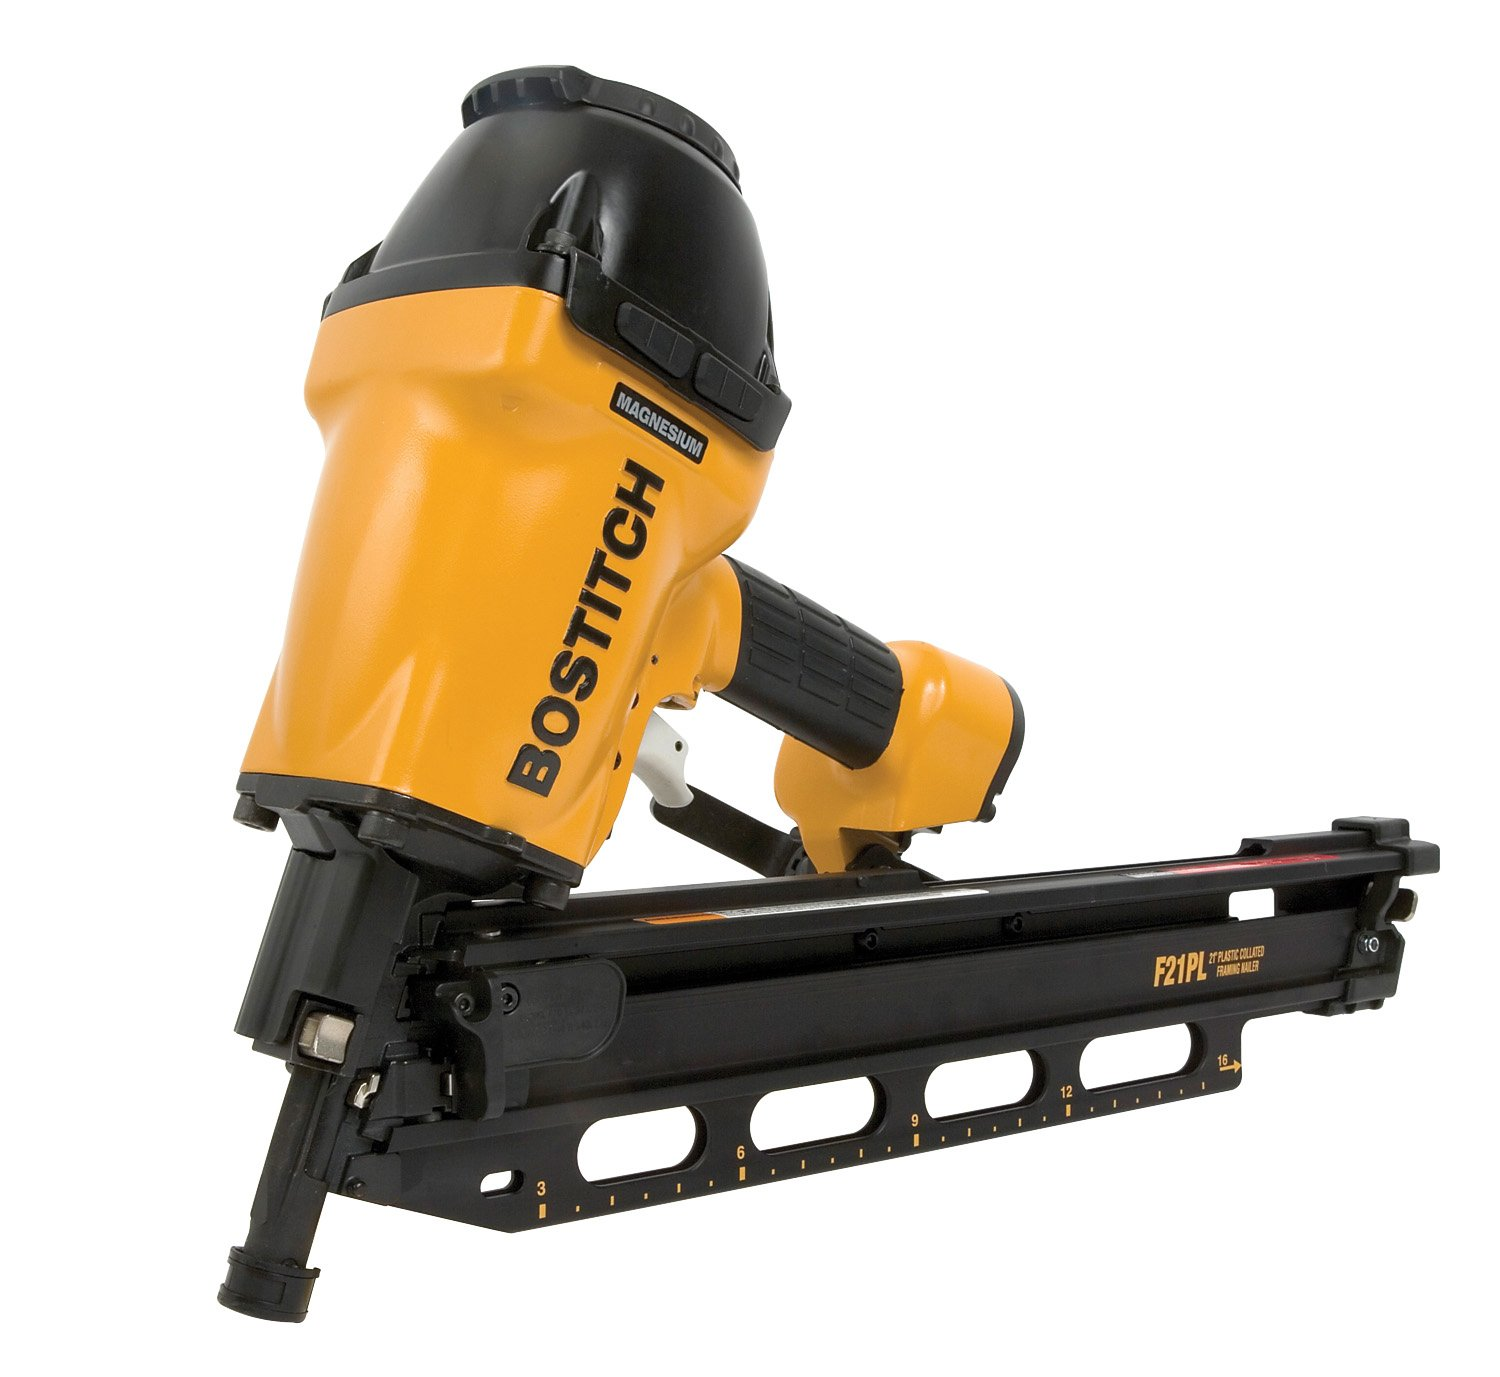 bostitch f21pl round head 1 12 inch to 3 12 inch framing nailer with positive placement tip and magnesium housing